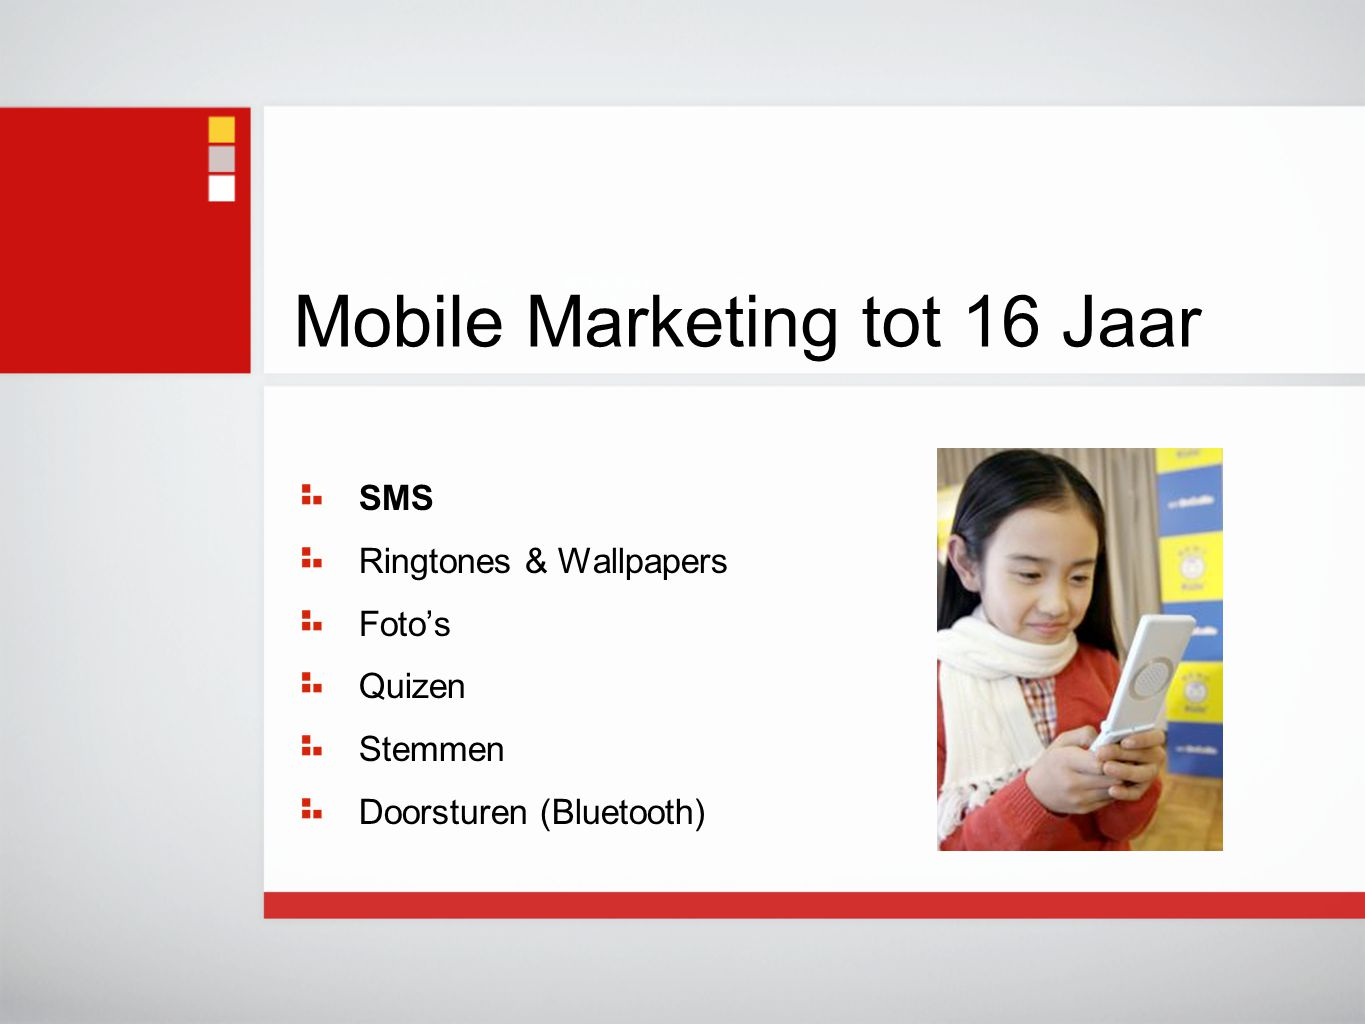 SMS Ringtones & Wallpapers Foto's Quizen Stemmen Doorsturen (Bluetooth) Mobile Marketing tot 16 Jaar